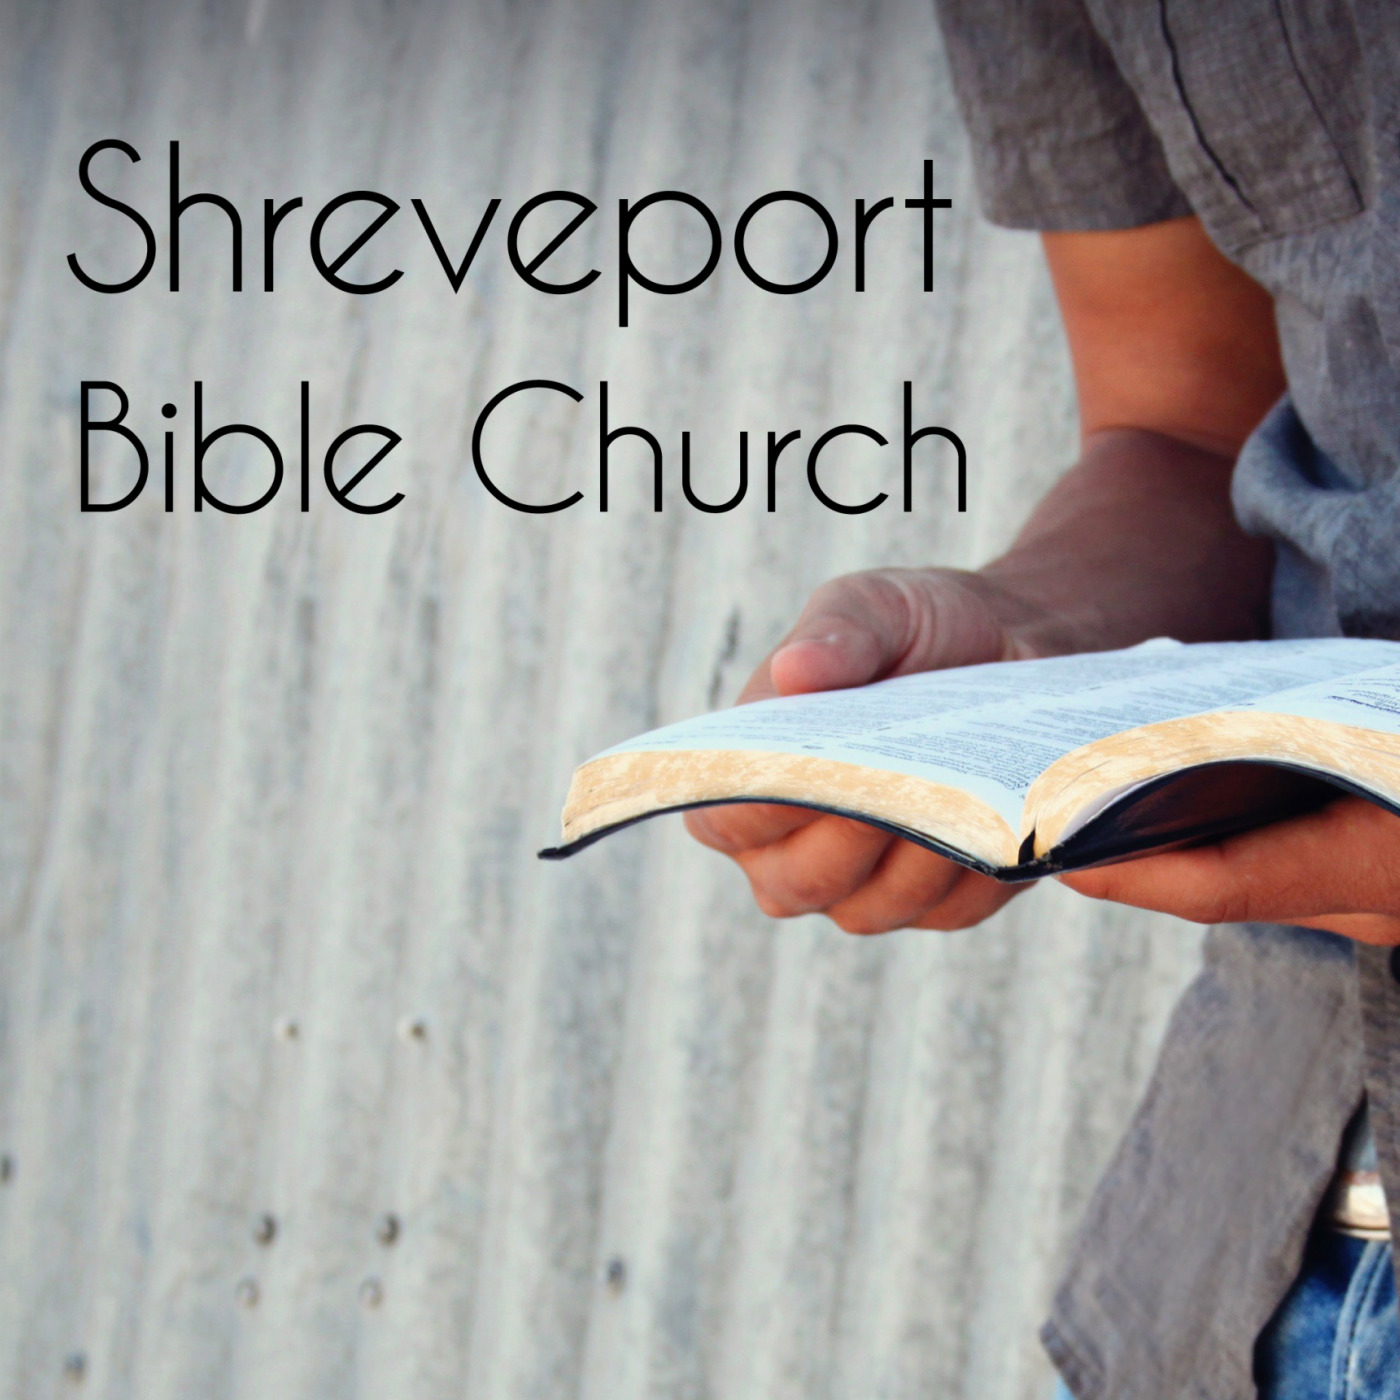 Shreveport Bible Church